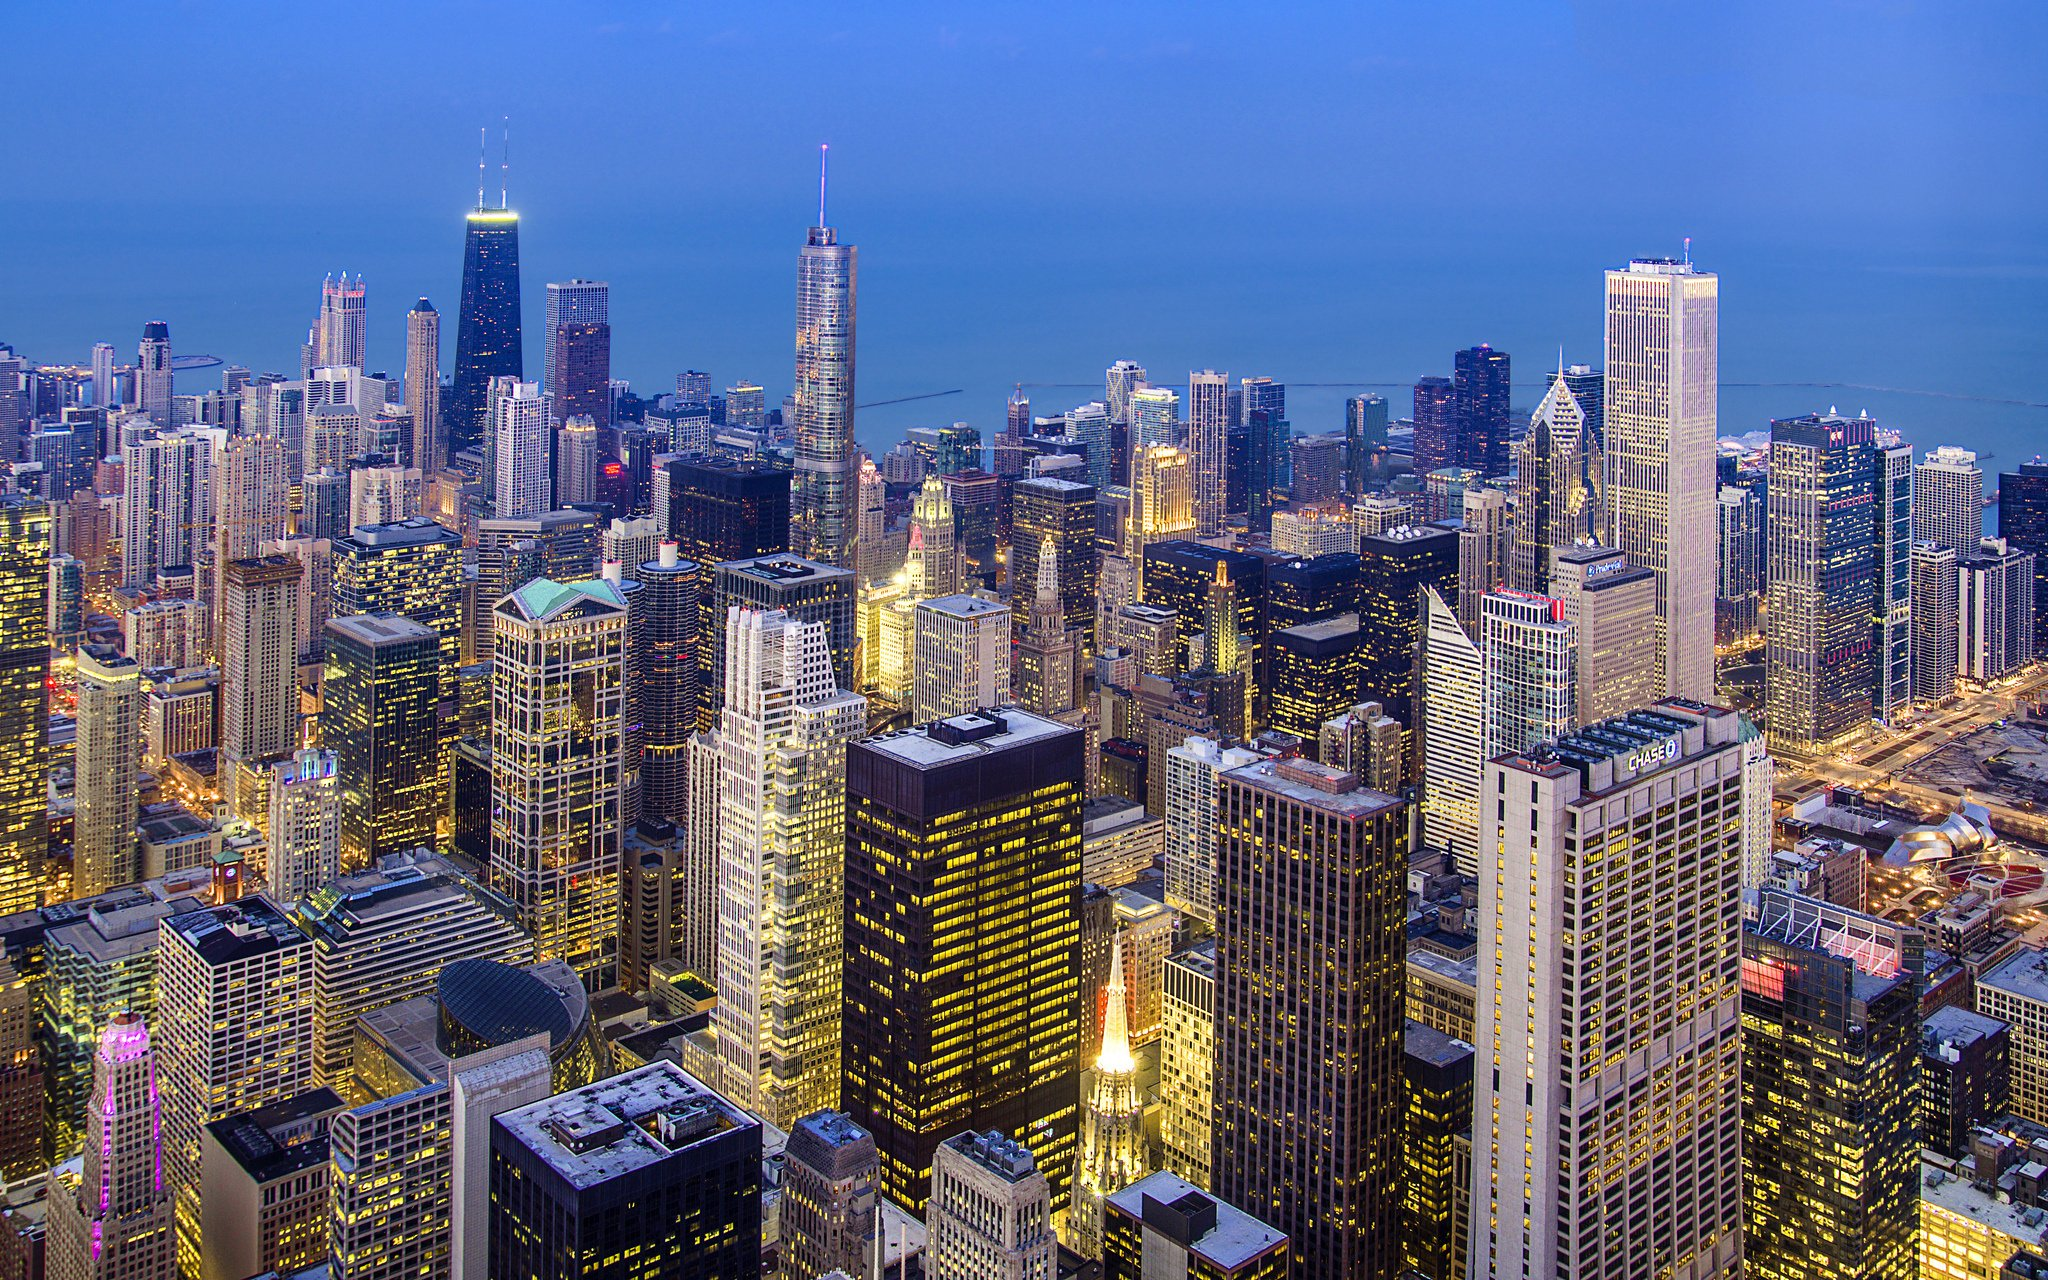 Chicago Wallpapers For Mobile And Desktop In HD 2048x1280